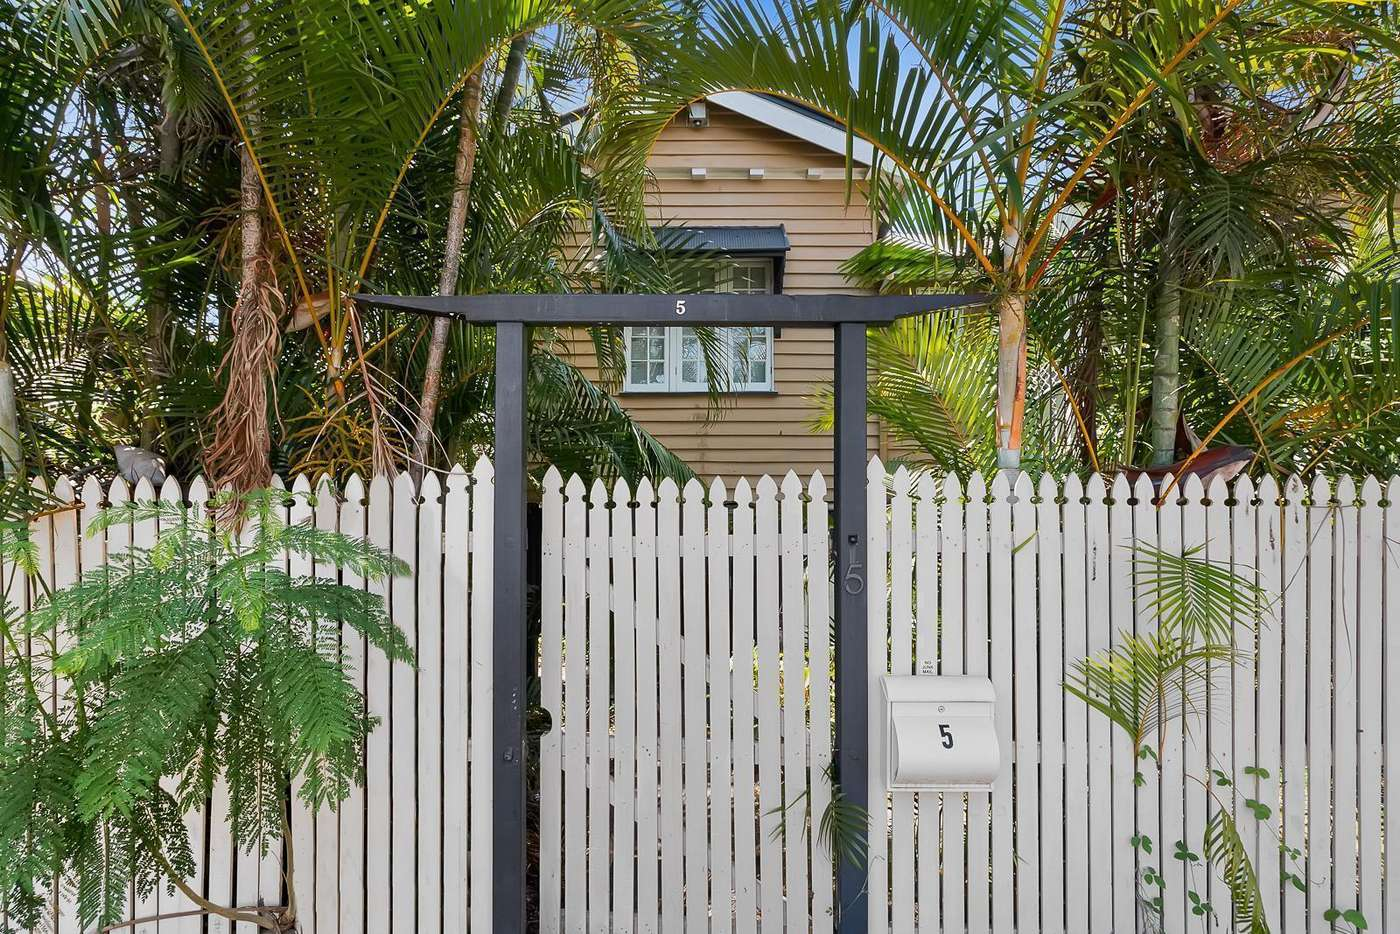 Main view of Homely house listing, 5 Heussler Street, Milton QLD 4064